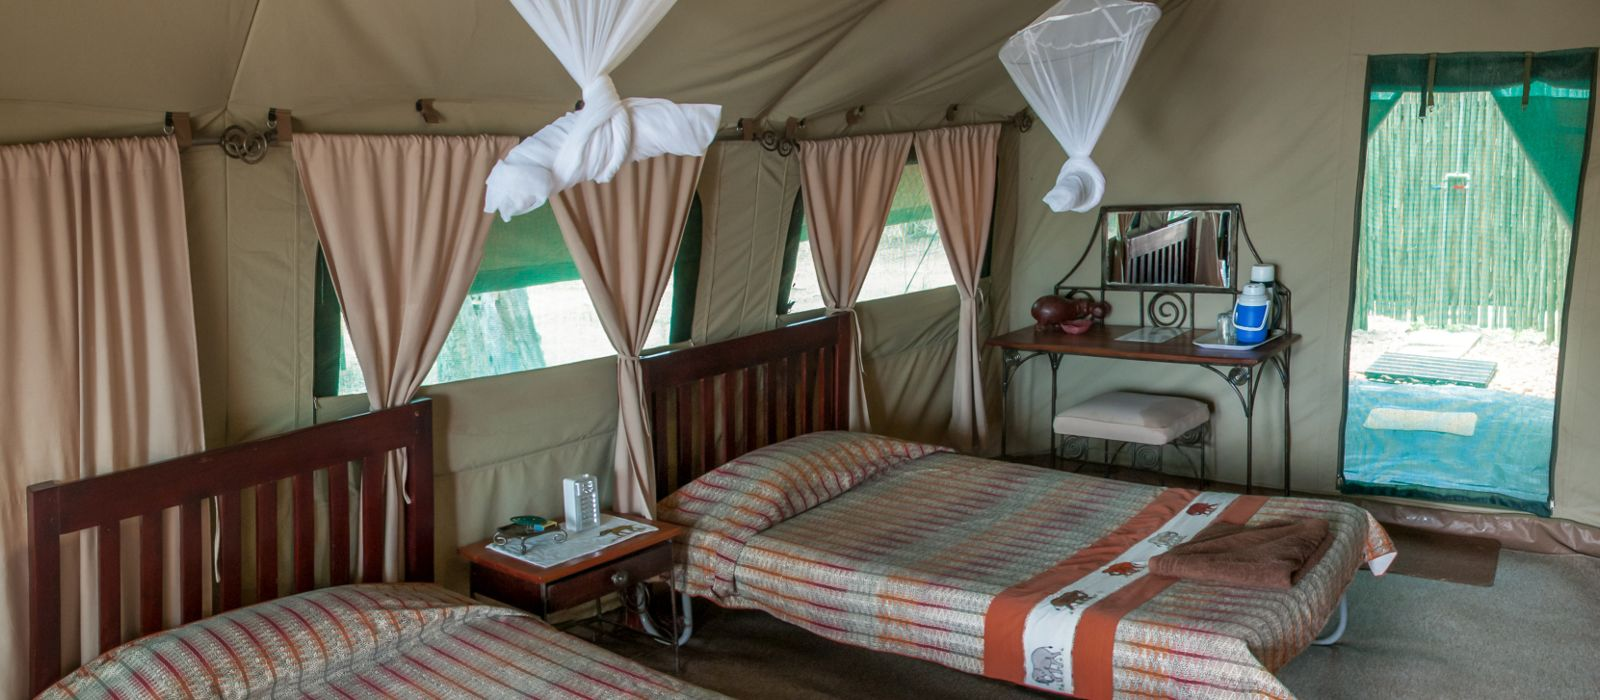 Hotel Goliath Safaris Tented Camp (Mana Pools) Simbabwe